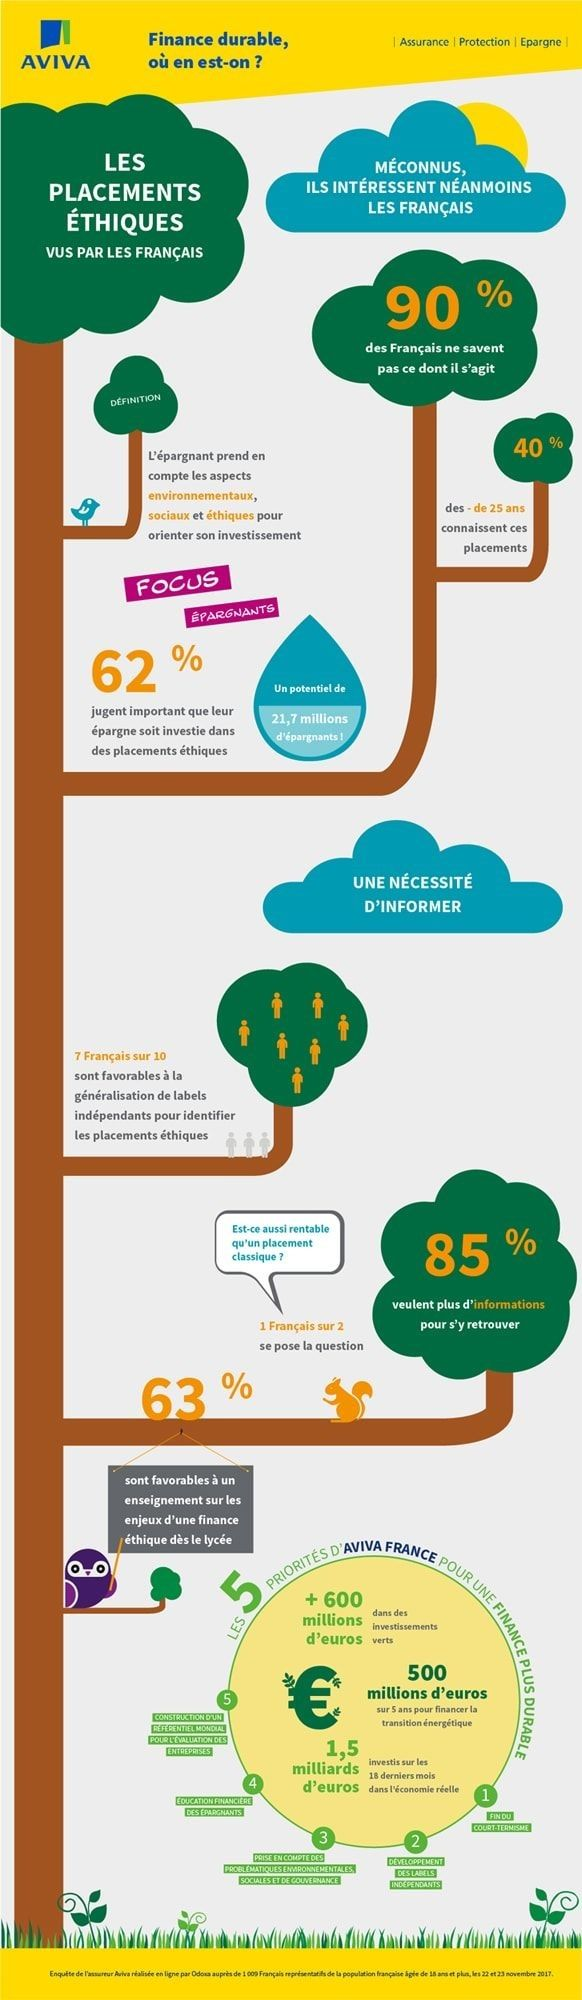 aviva-infographie-placements-financiers-ethiques